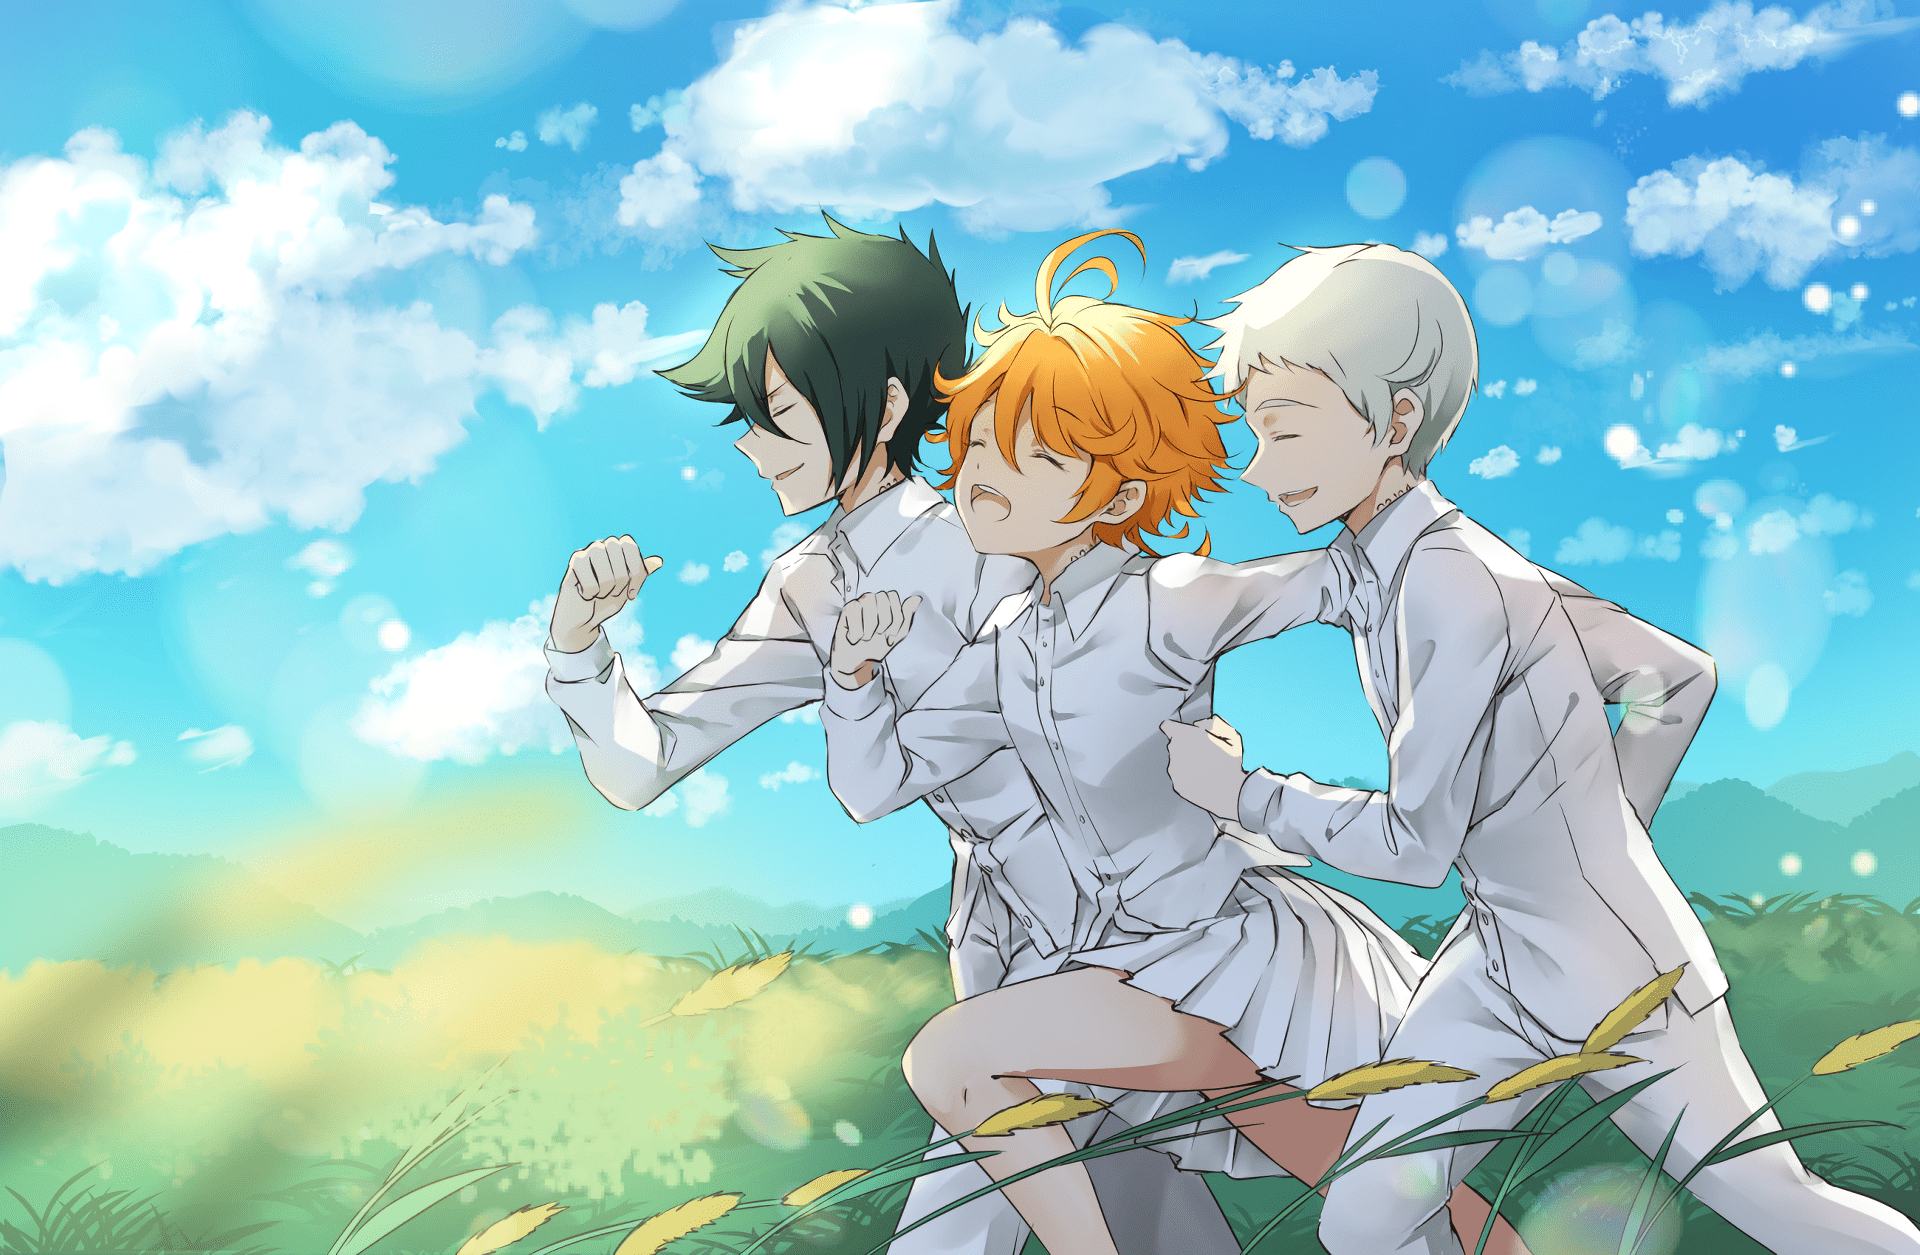 The Promised Neverland Wallpaper - NawPic